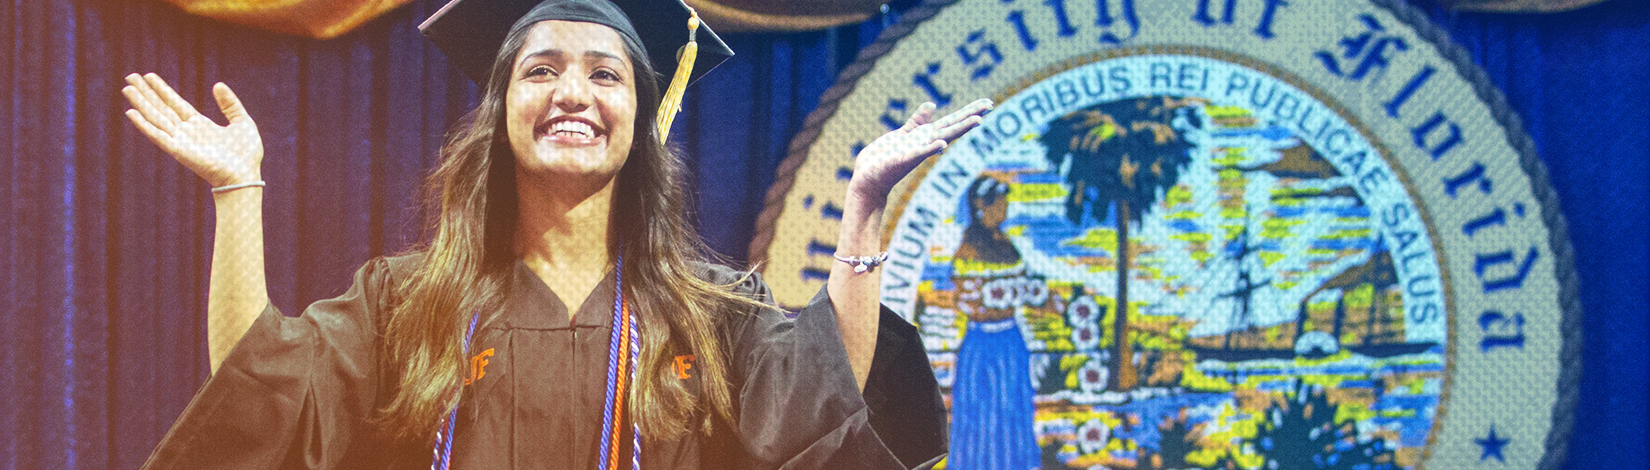 Graduating female CALS student with honors cords walks across stage waving at a graduation ceremony